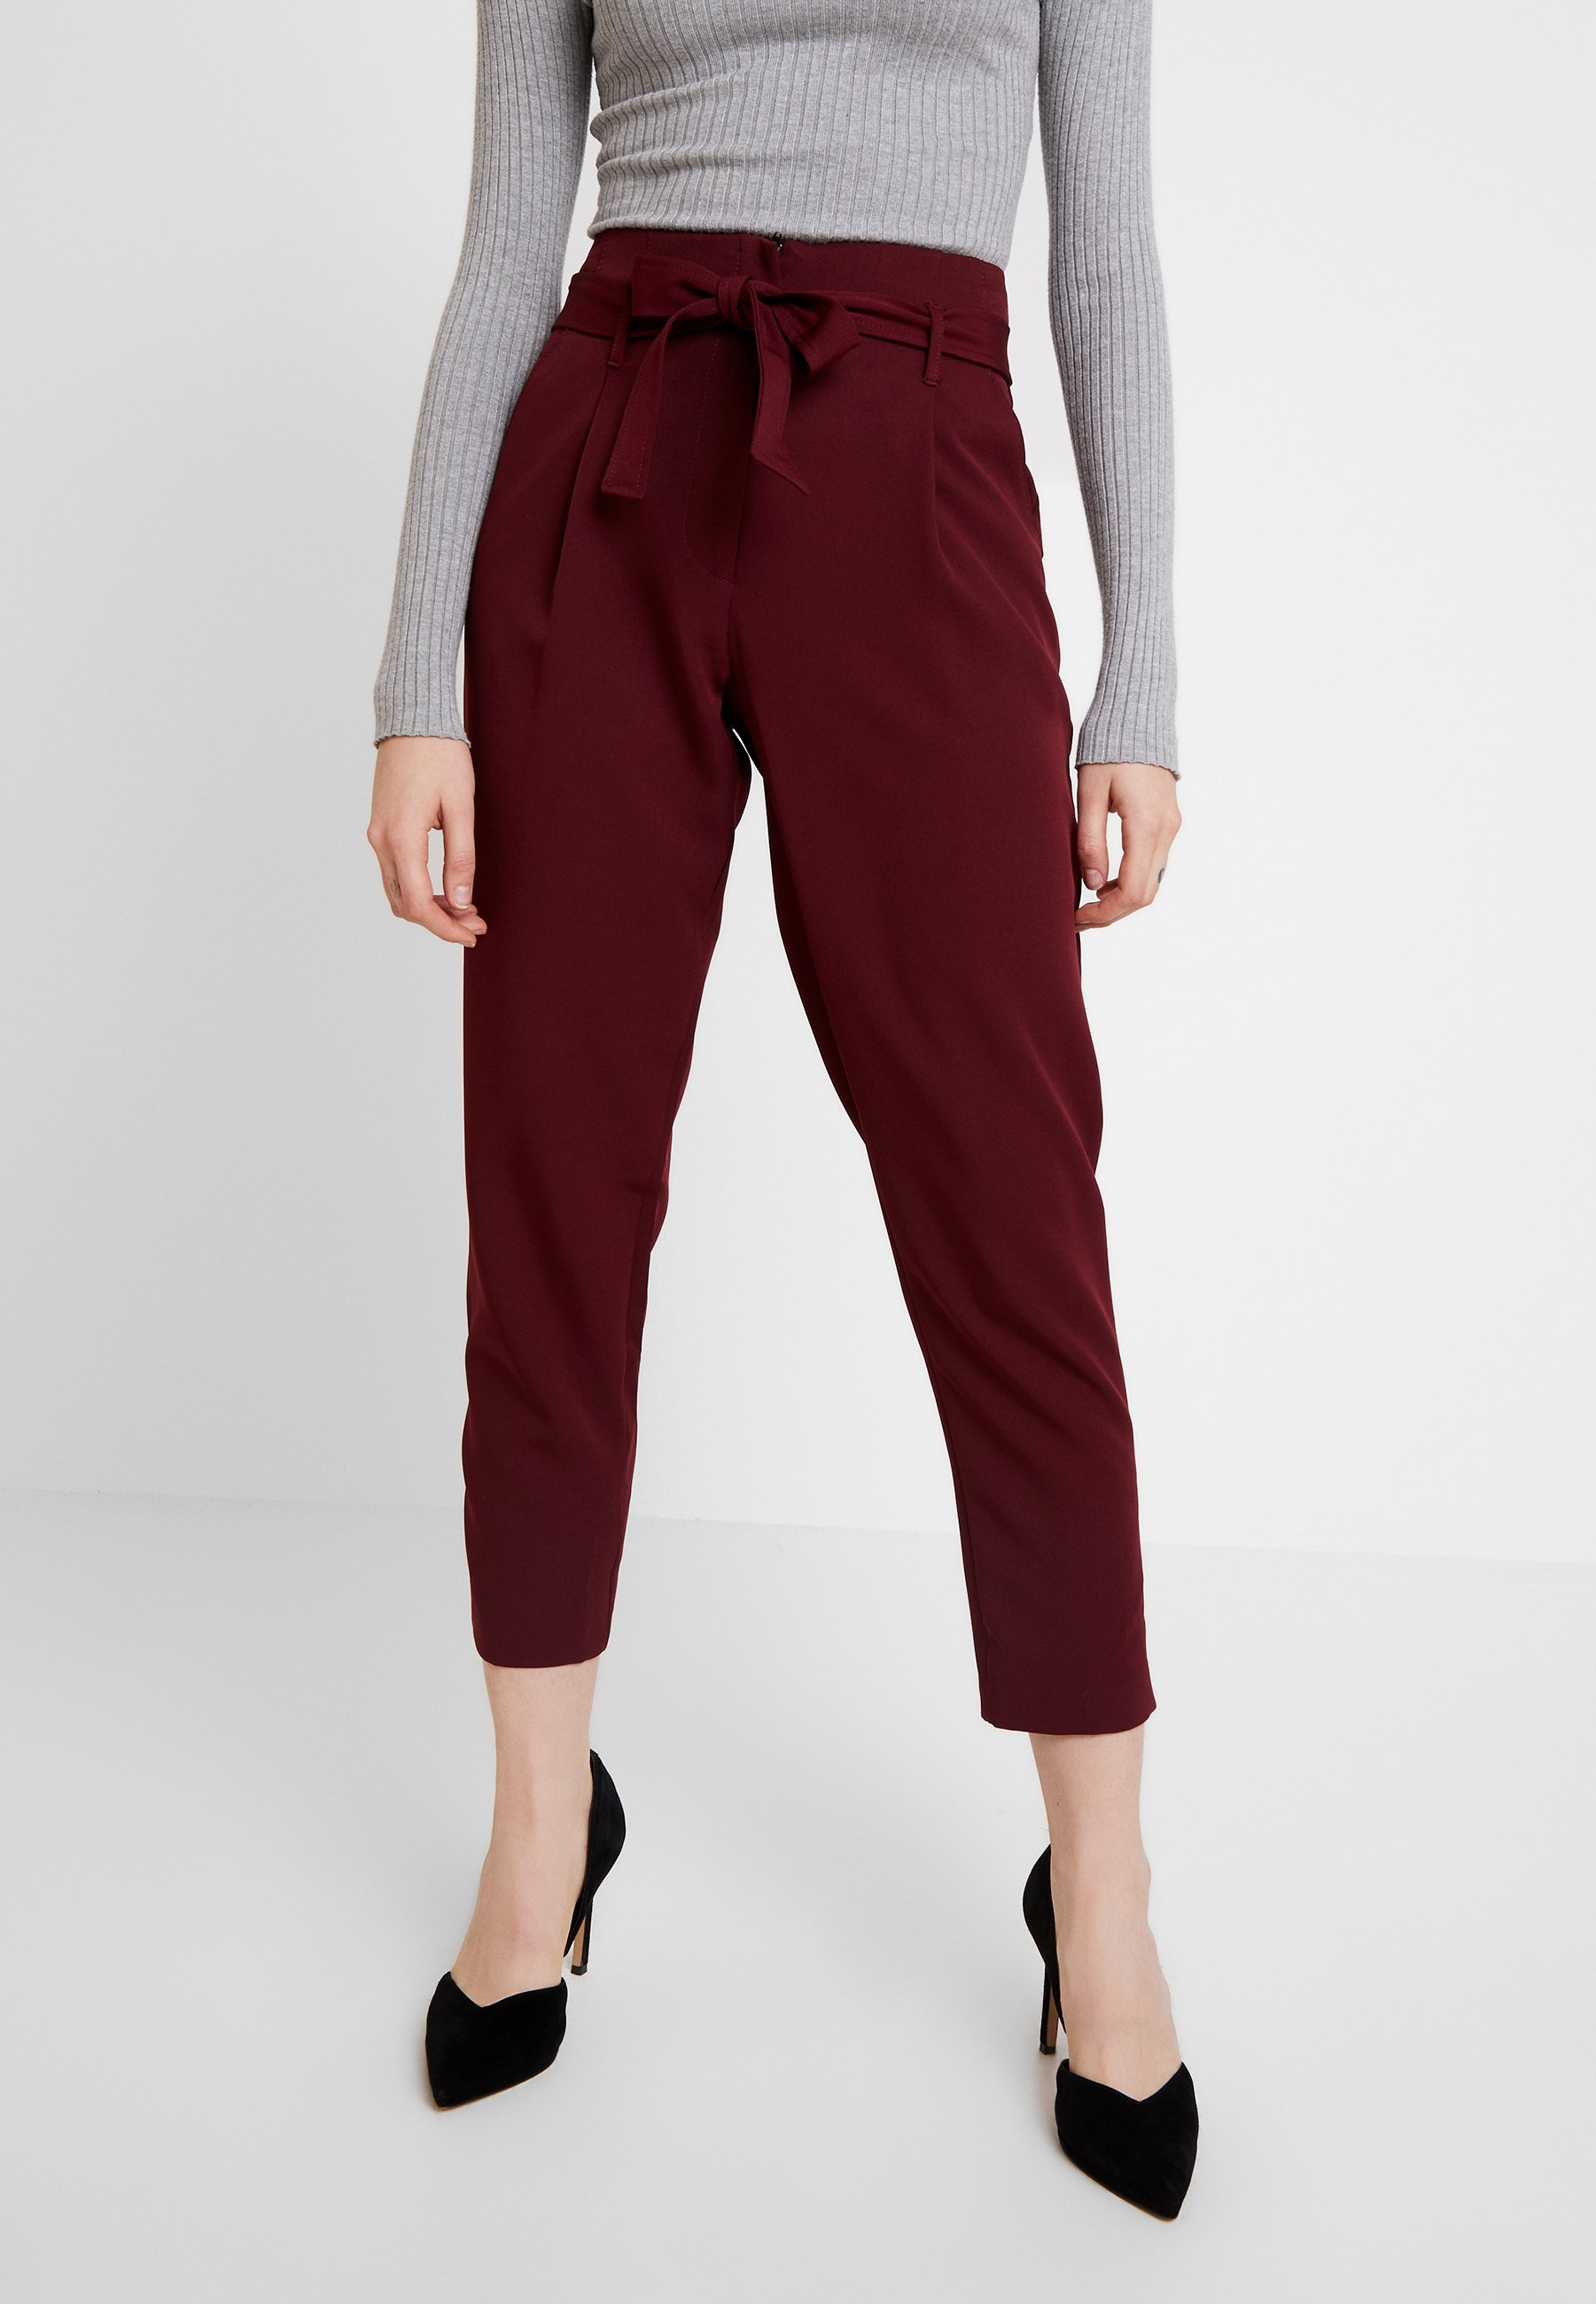 New Paperbag TrouserPantalon Look Vicky Burgundy Classique 0N8ynwmPvO